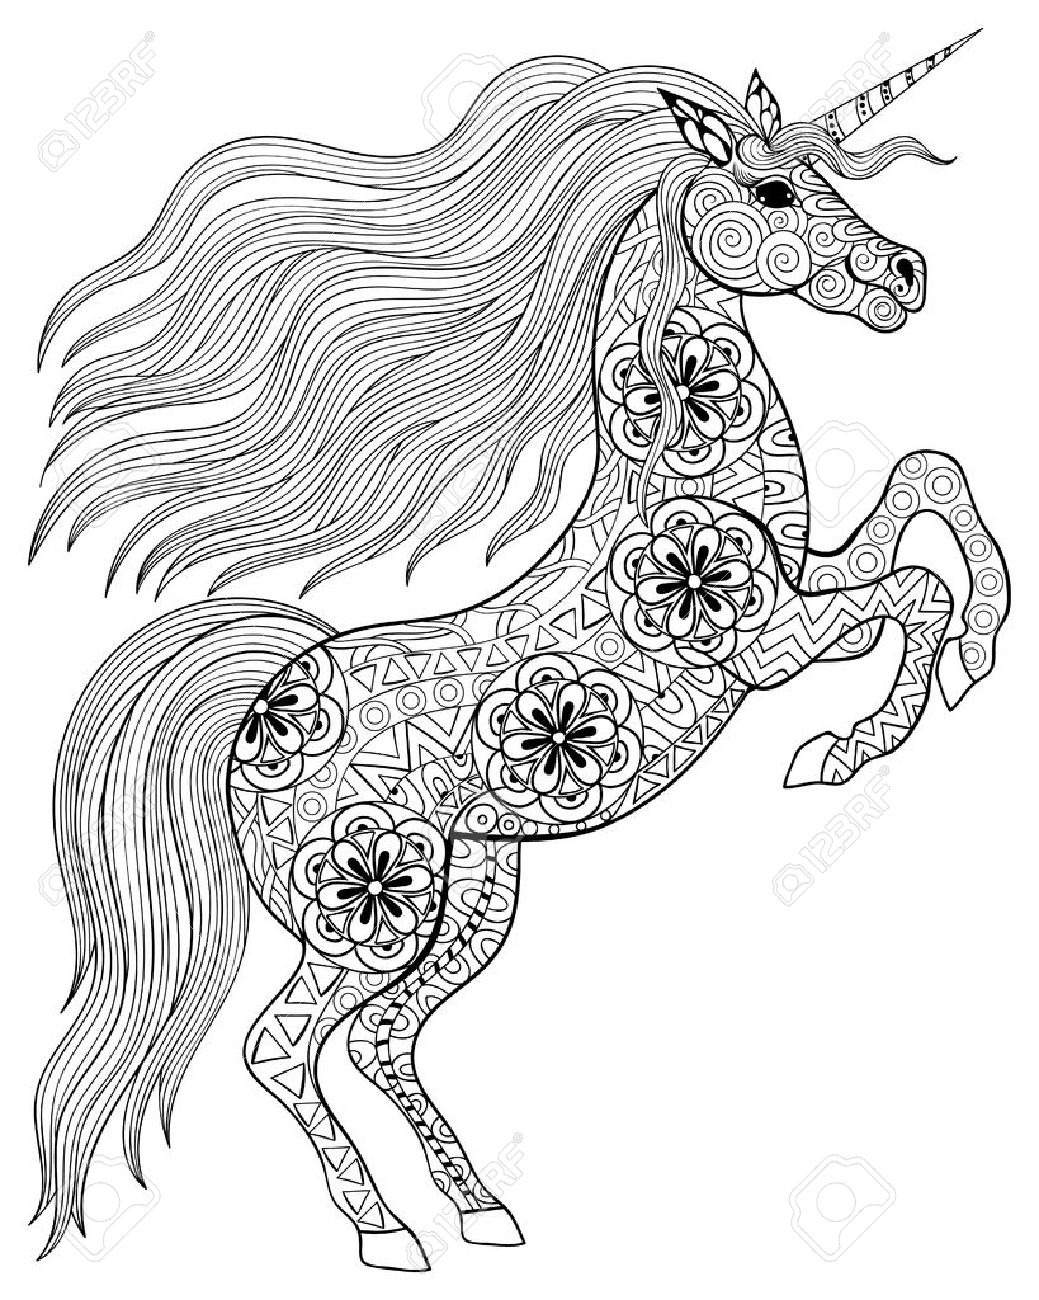 Hand drawn magic Unicorn for adult anti stress Coloring Page with high details isolated on white background, illustration in zentangle style. Vector monochrome sketch. Animal collection. Stock Vector - 51458784